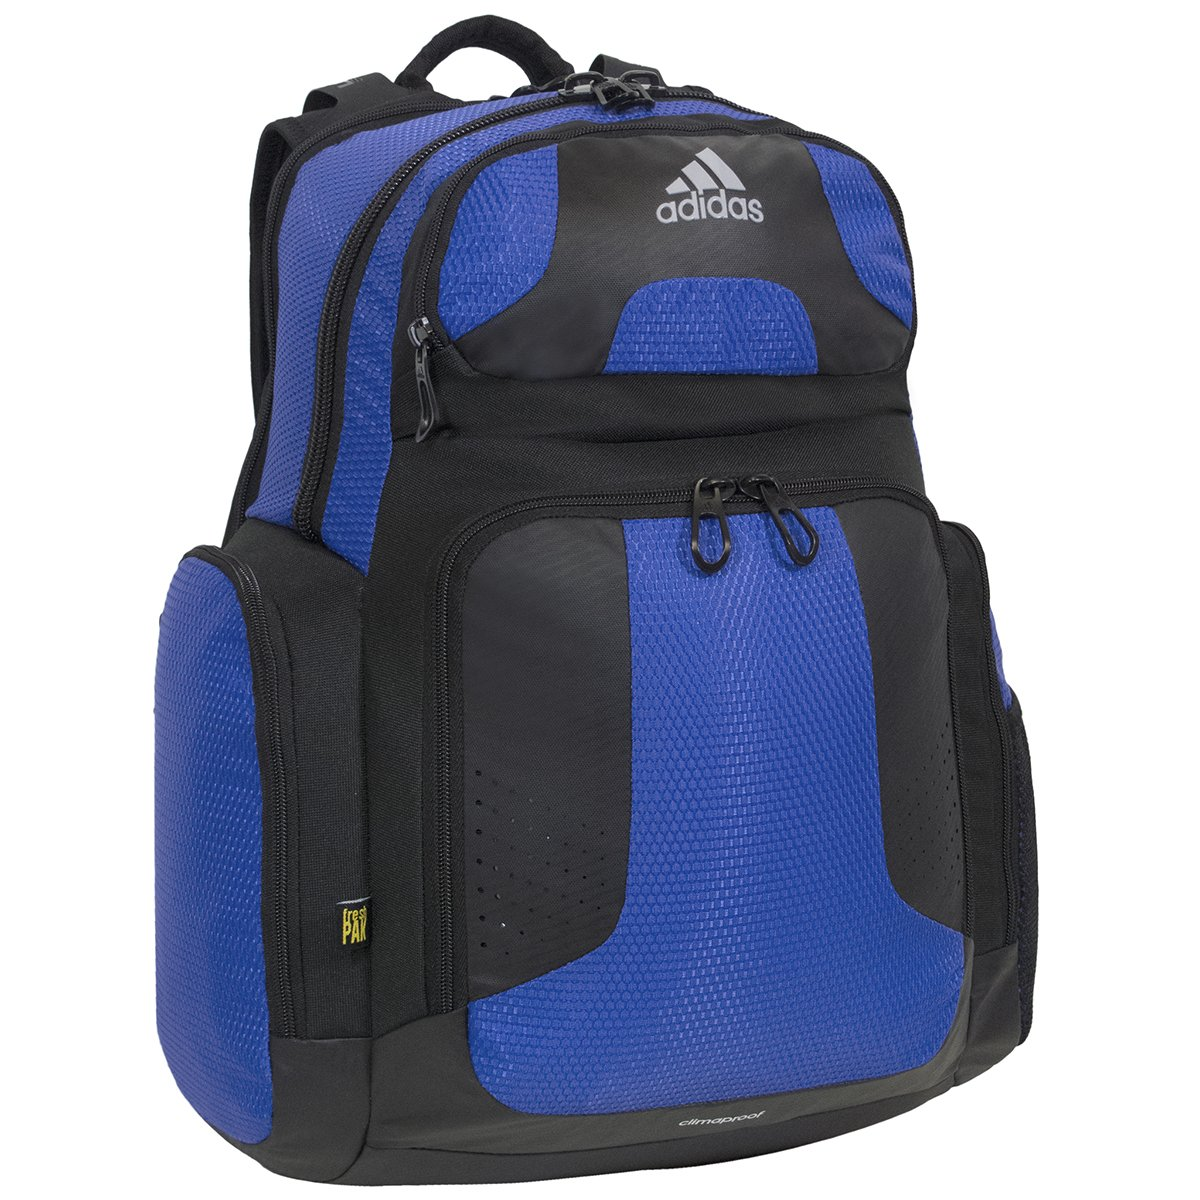 adidas Strength Backpack Black One Size Agron Inc (adidas Bags) 5136515